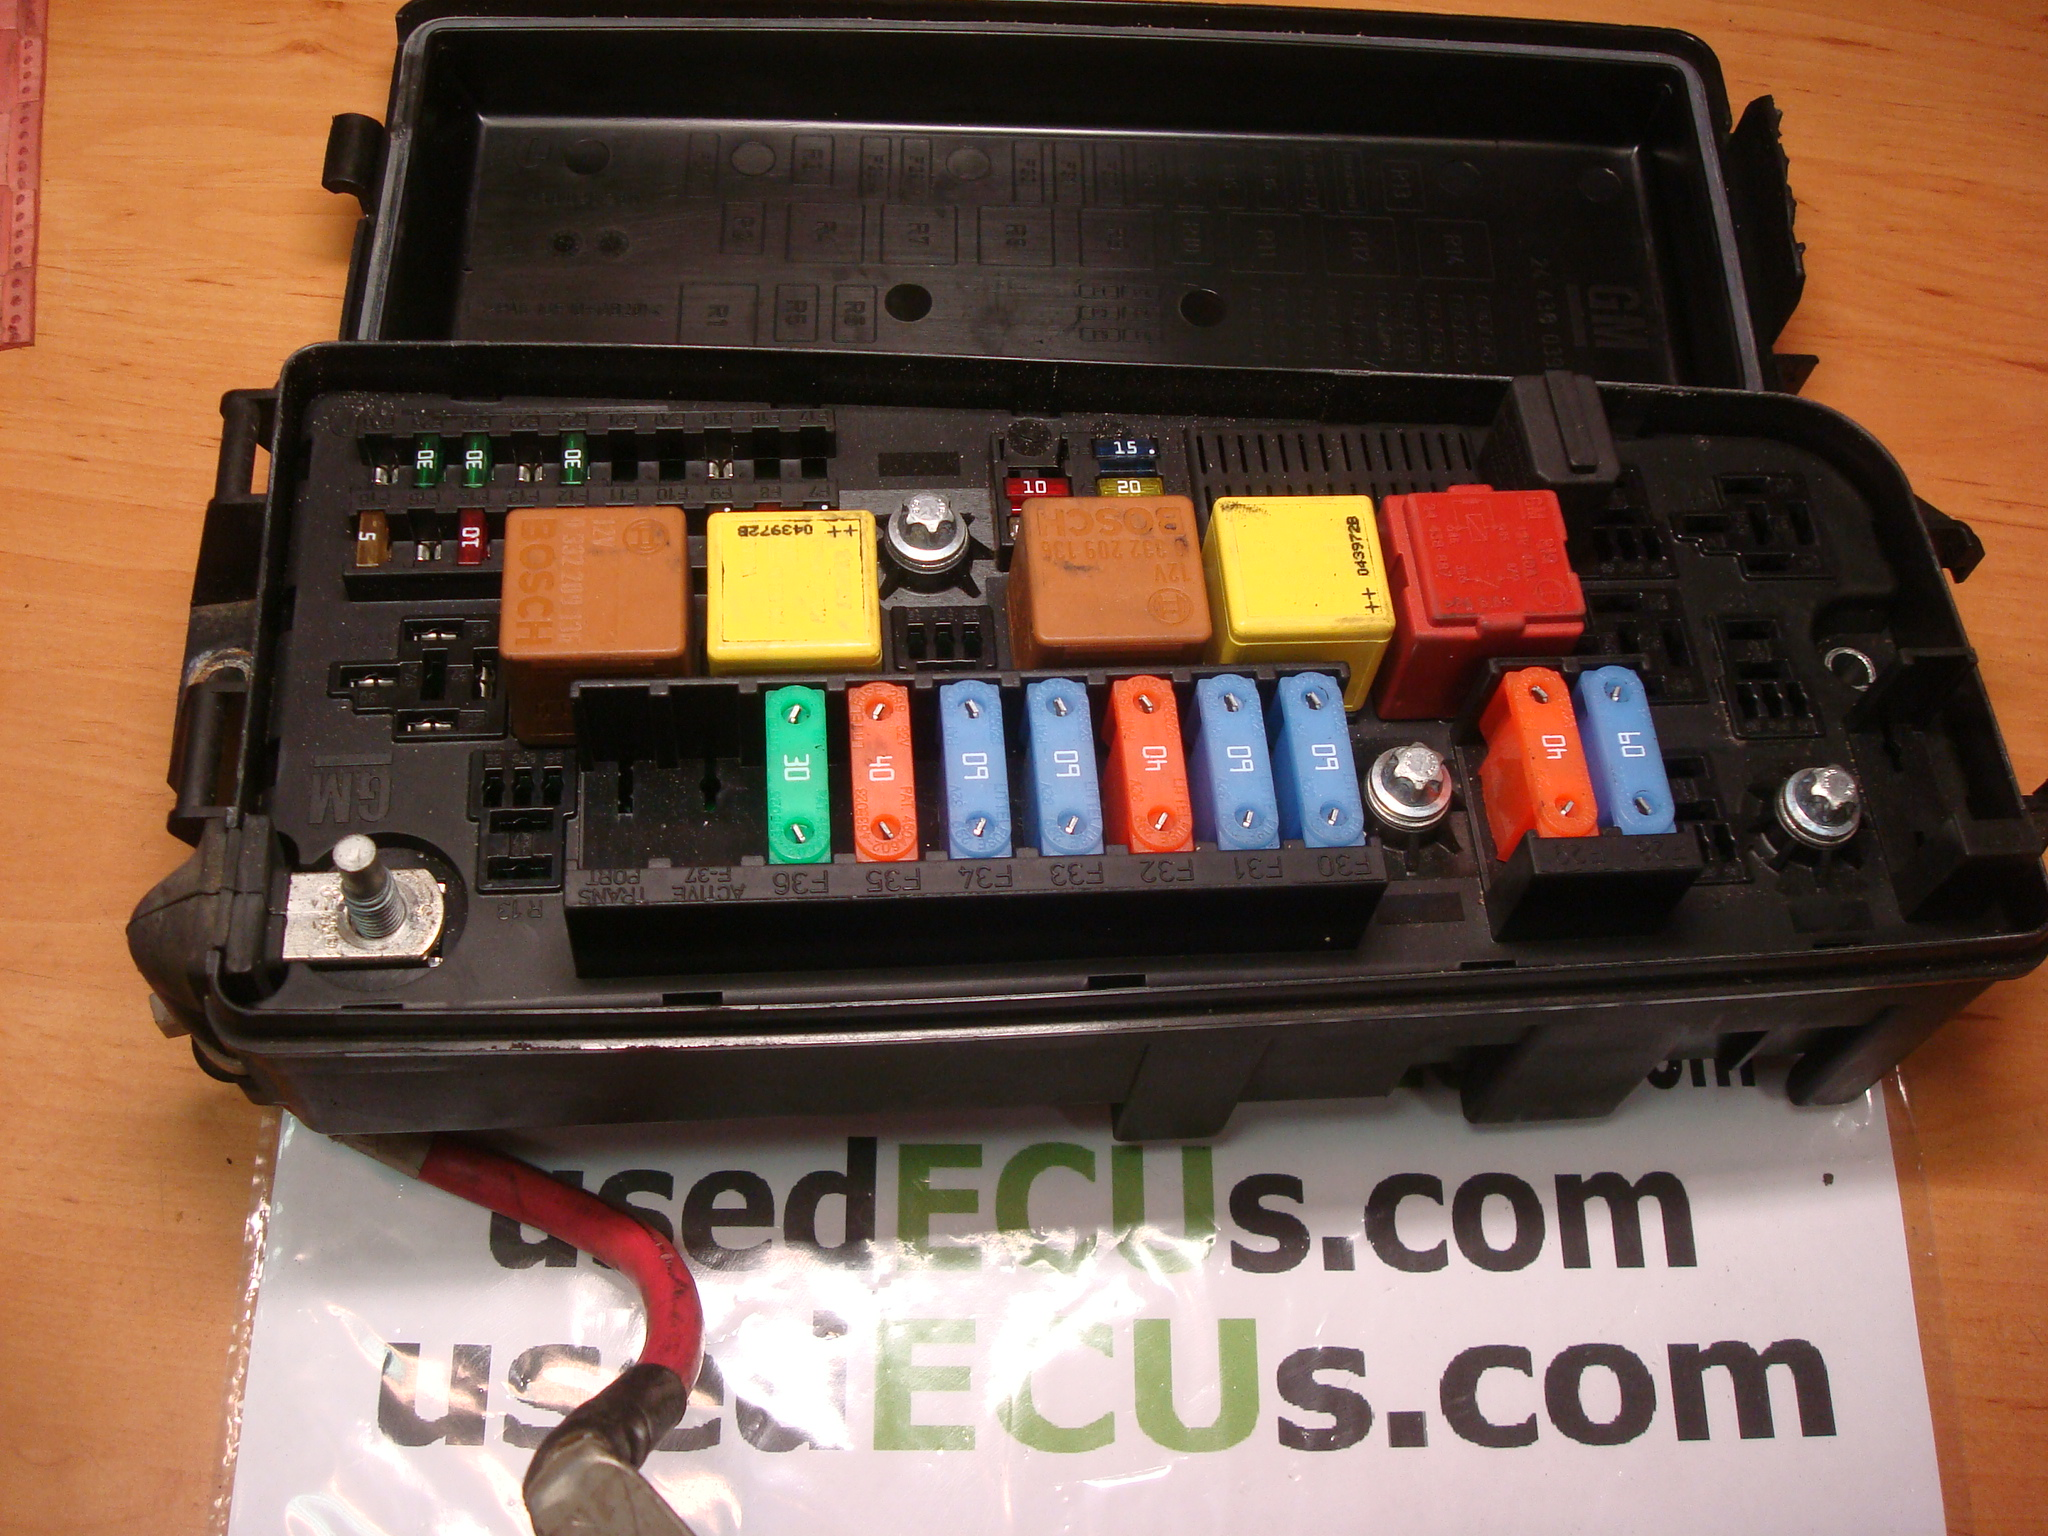 Gm Fuse Box Opel Vauxhall Vectra C Fusebox With Lid 13187505 Article 519066500 13 187 505 460023260